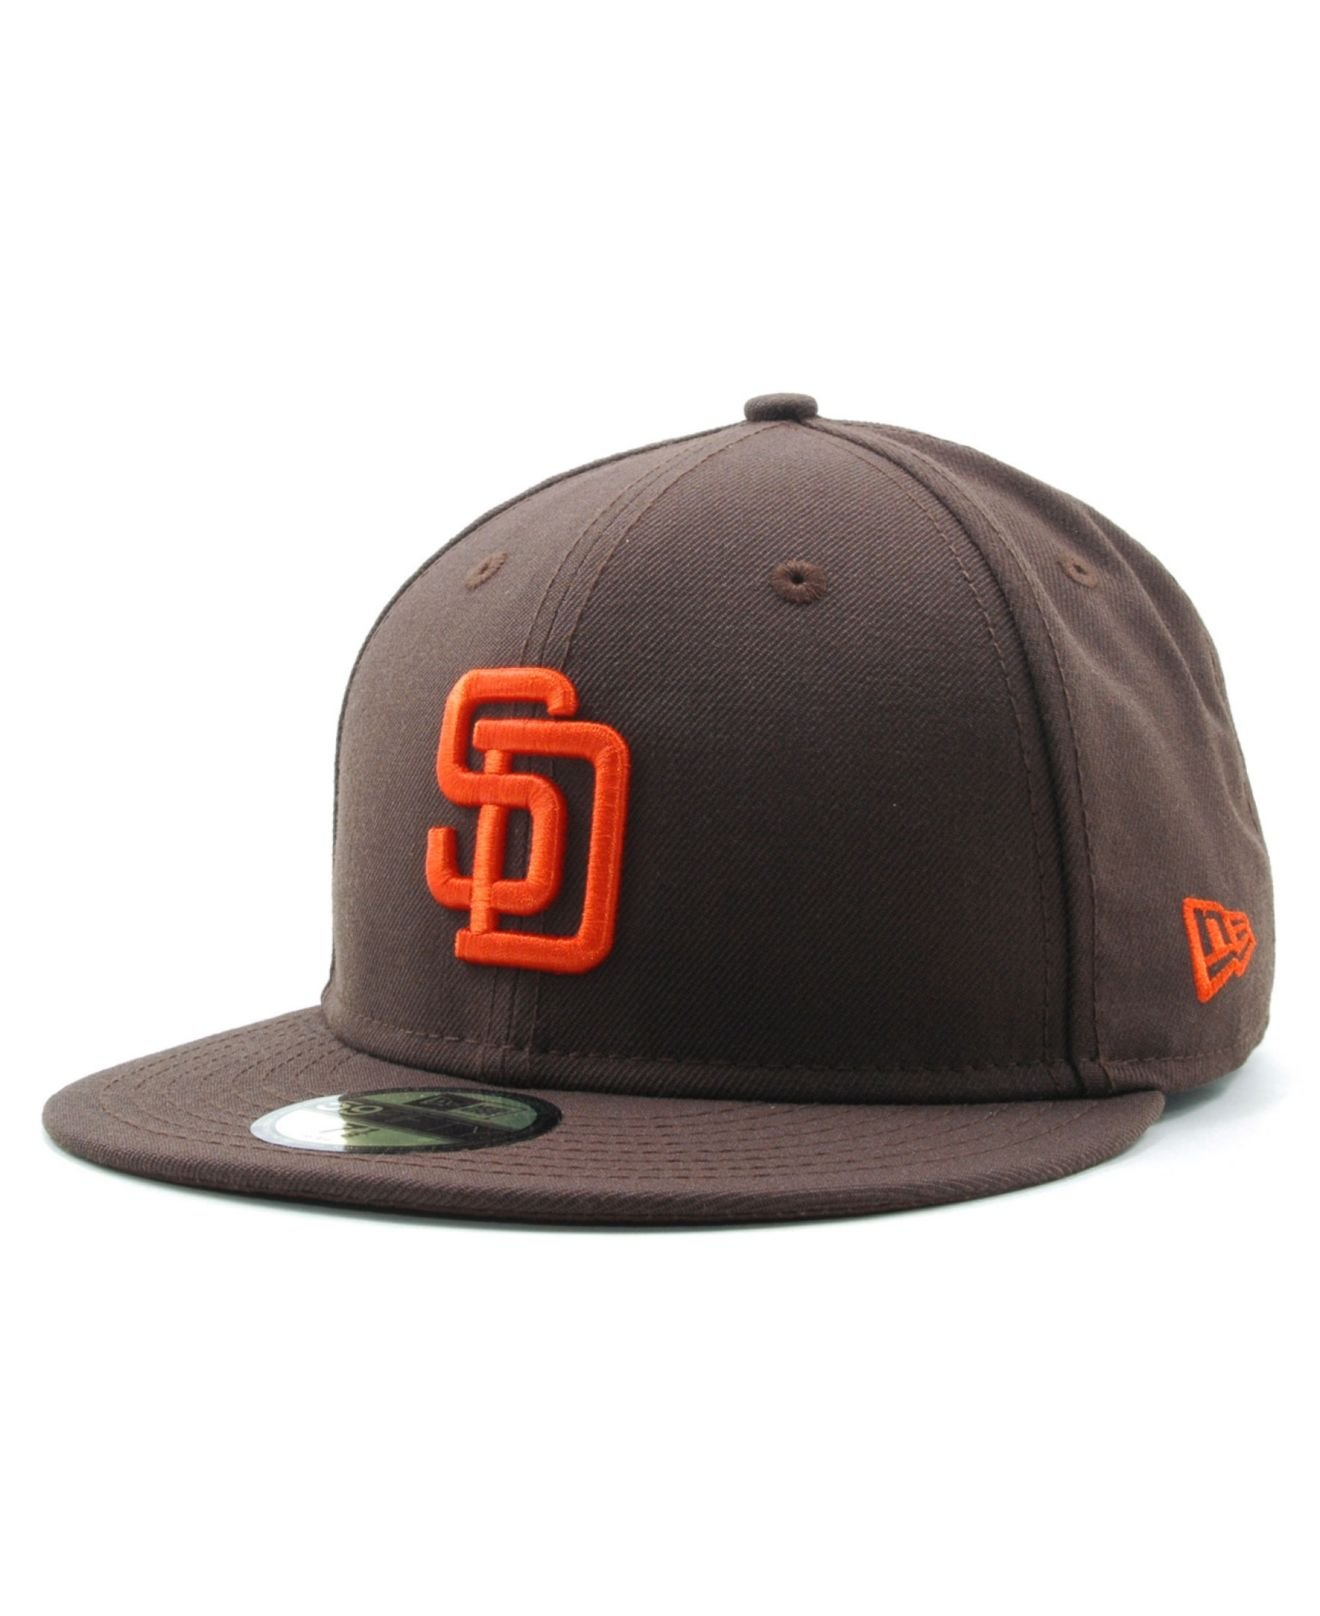 quality design 99613 8f8b2 ... cheapest lyst ktz san diego padres cooperstown 59fifty cap in brown for  men 480ec b6ab3